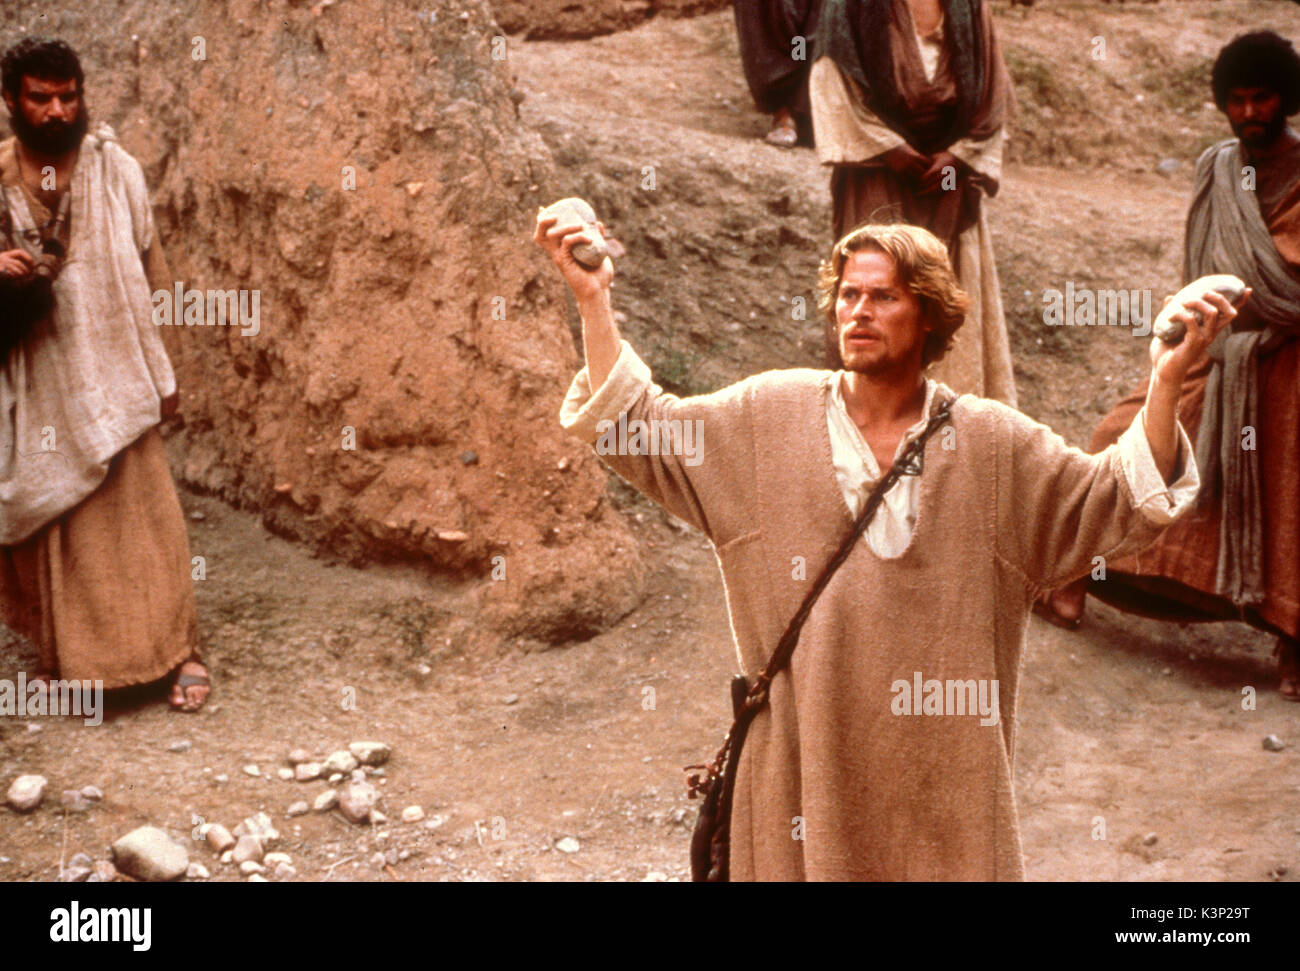 THE LAST TEMPTATION OF CHRIST [US / CAN 1988] WILLEM DAFOE as Jesus     Date: 1988 - Stock Image